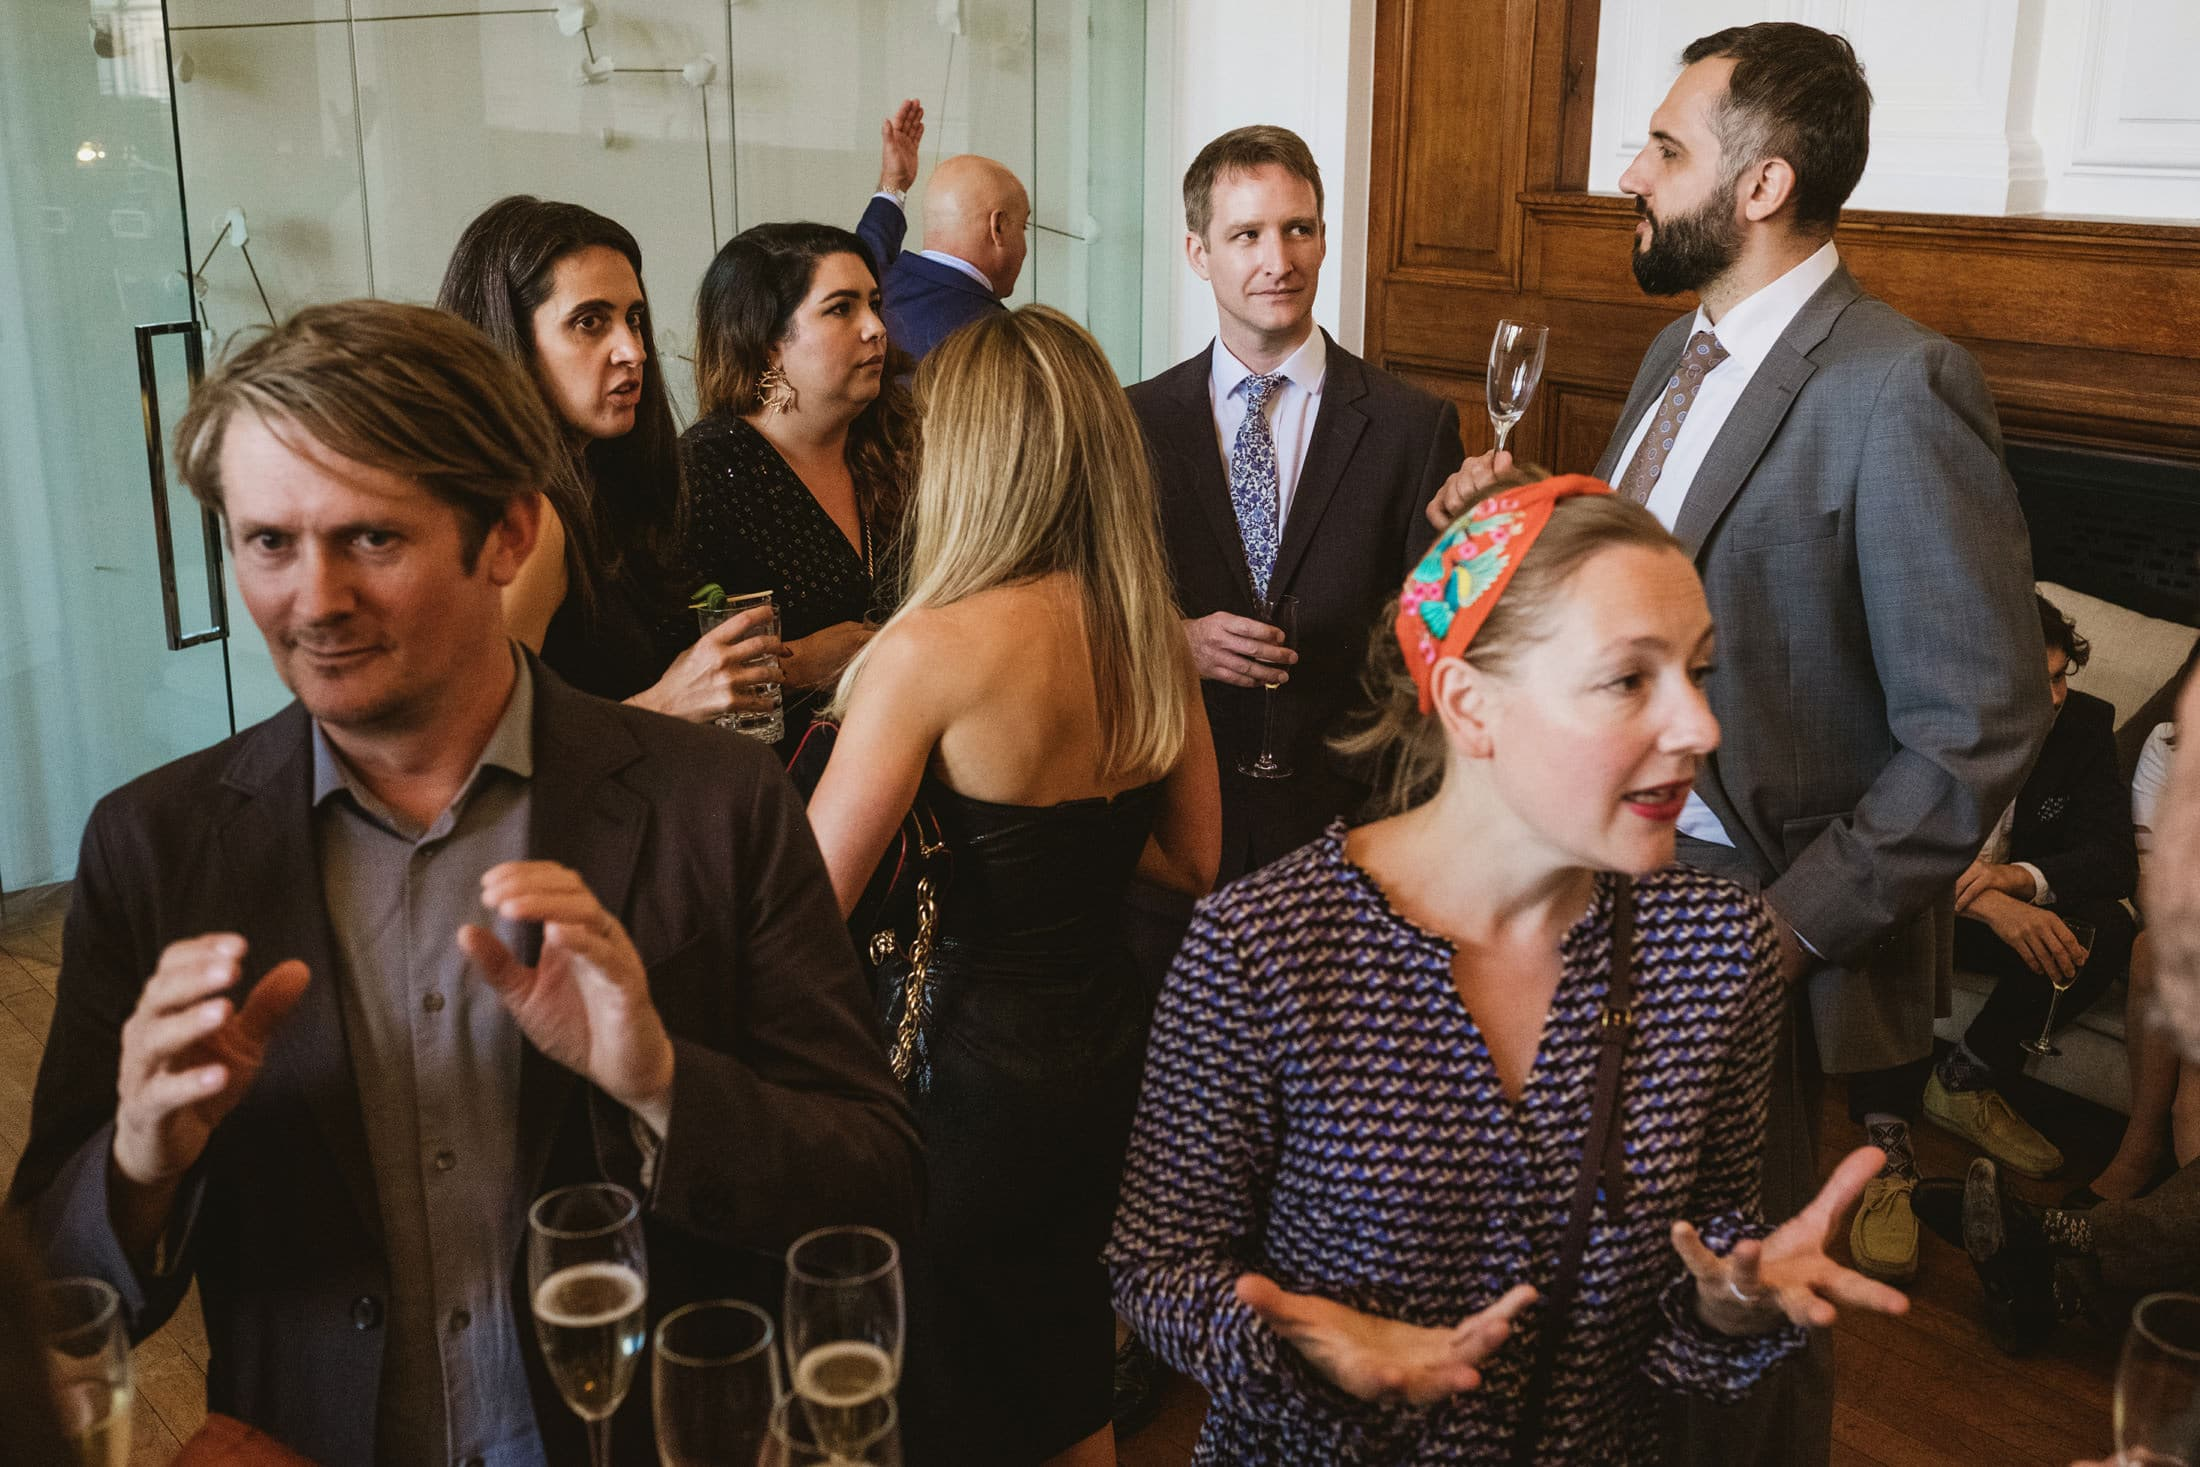 Town Hall Hotel London Reportage Wedding Photographer